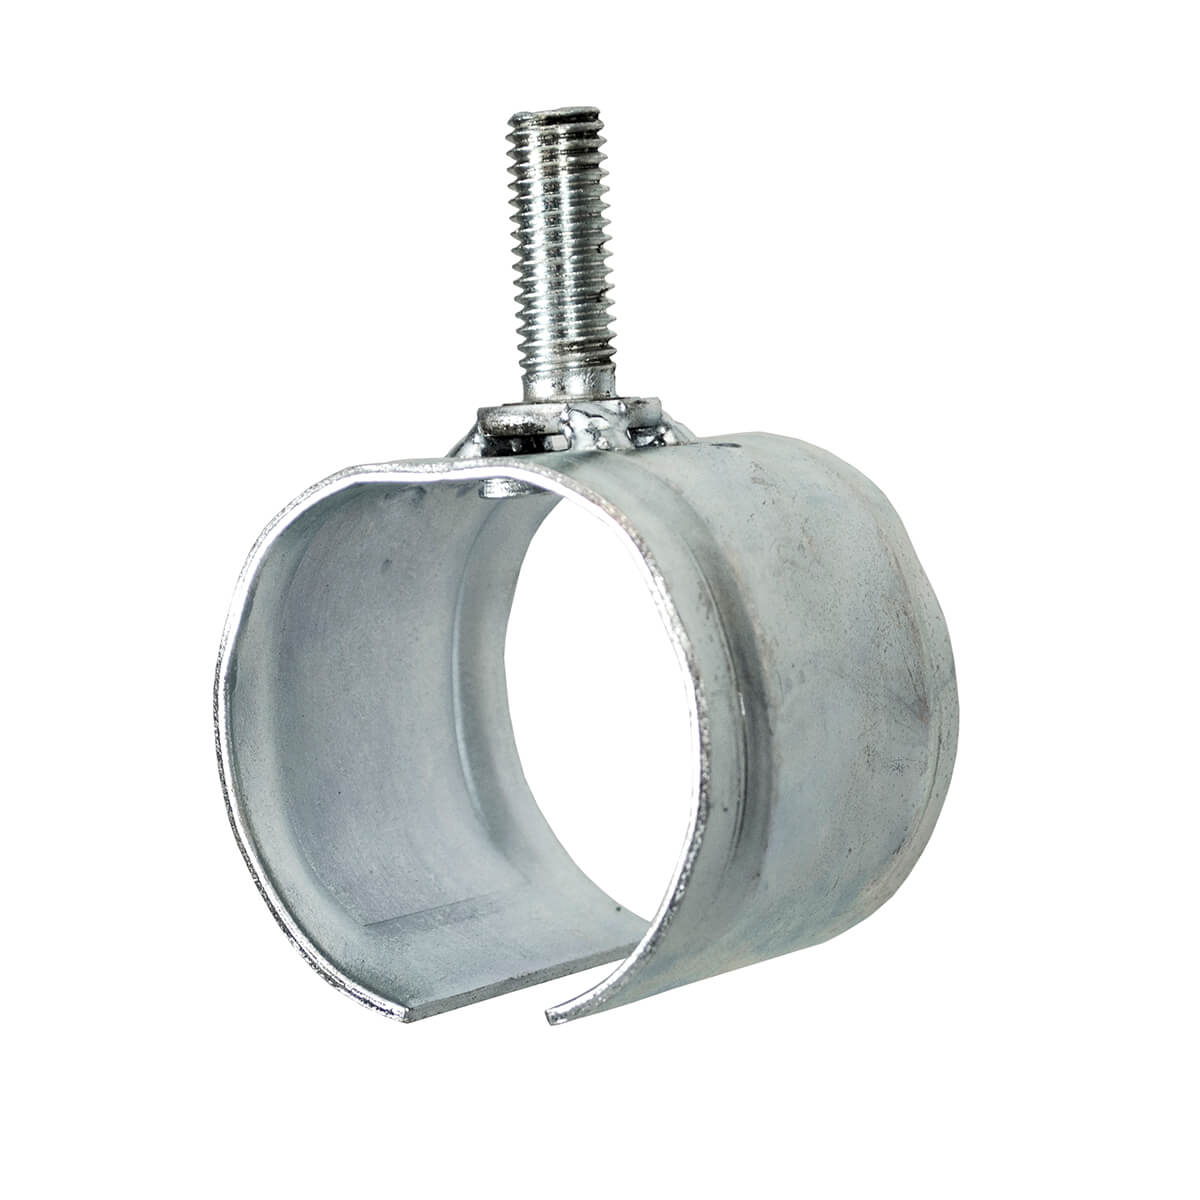 Cannonball Universal Bolt Hung Bracket